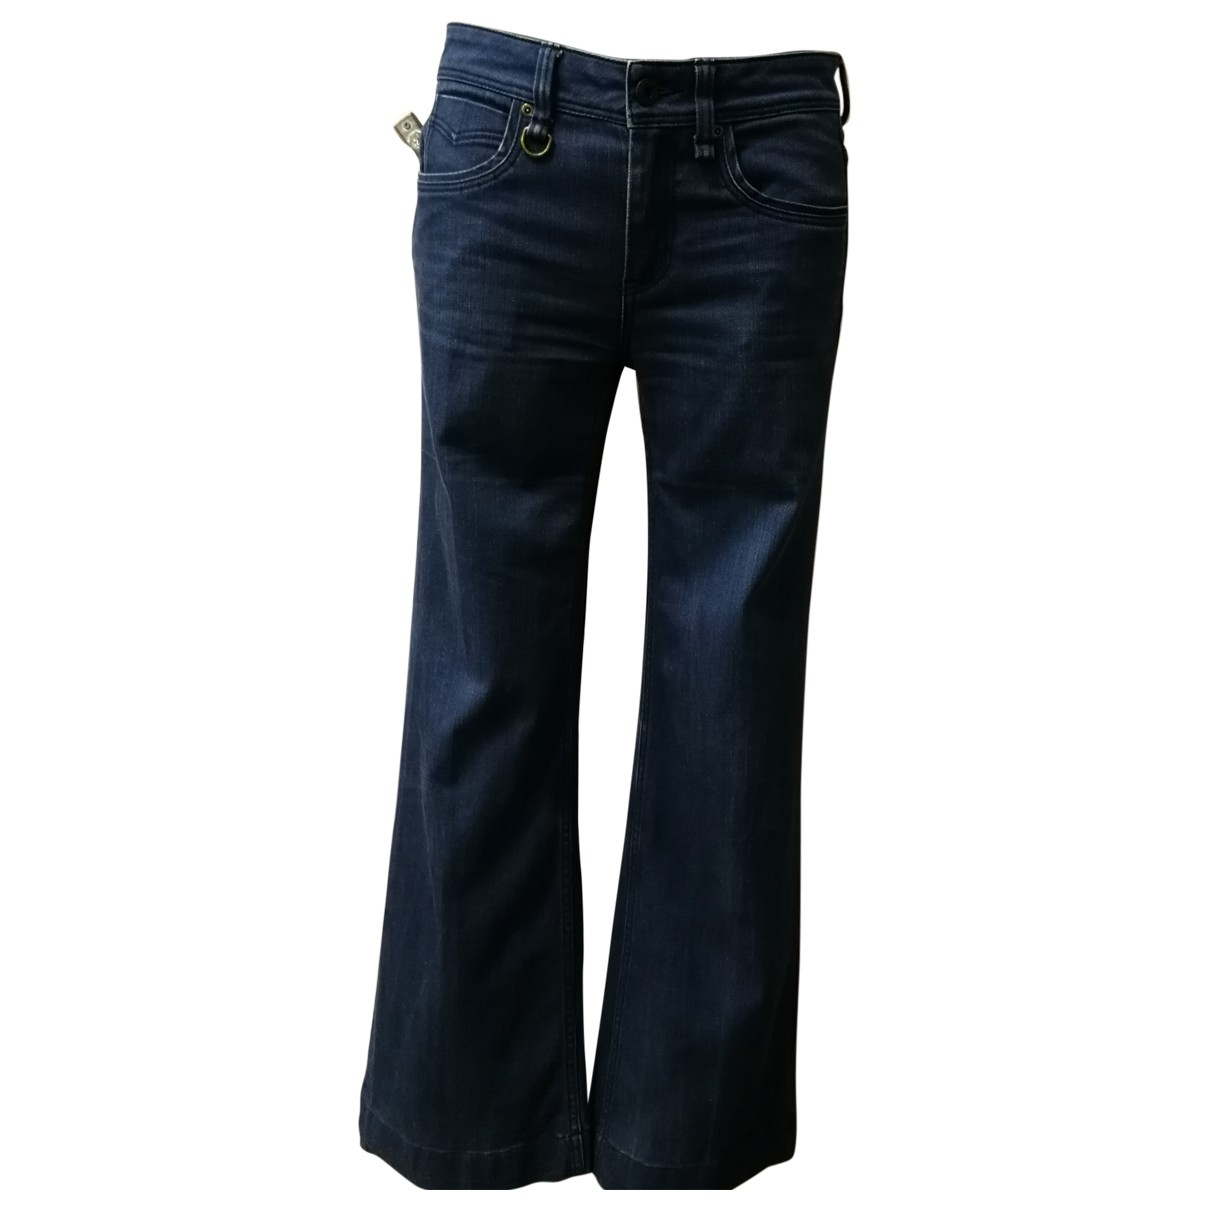 Burberry \N Blue Cotton - elasthane Jeans for Women 26 US